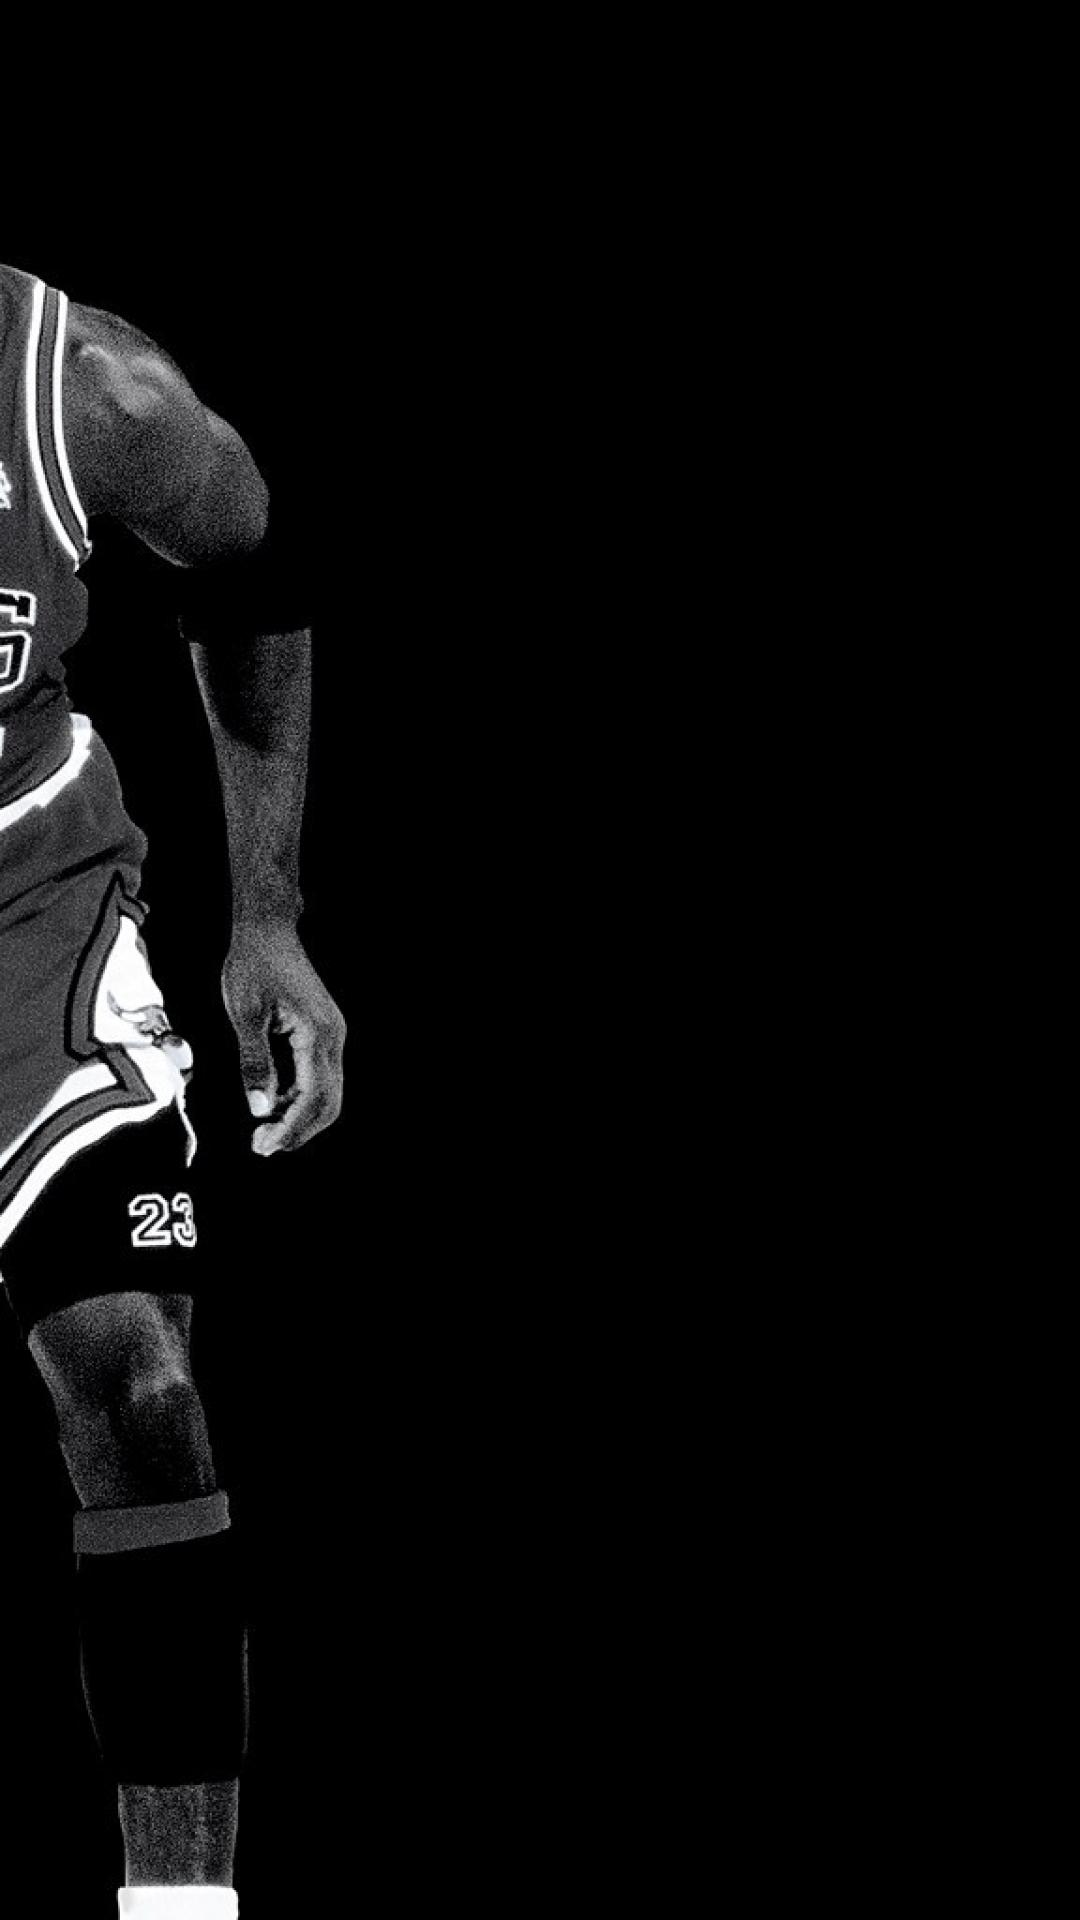 Michael Jordan Iphone 5 Wallpaper Posted By Sarah Peltier